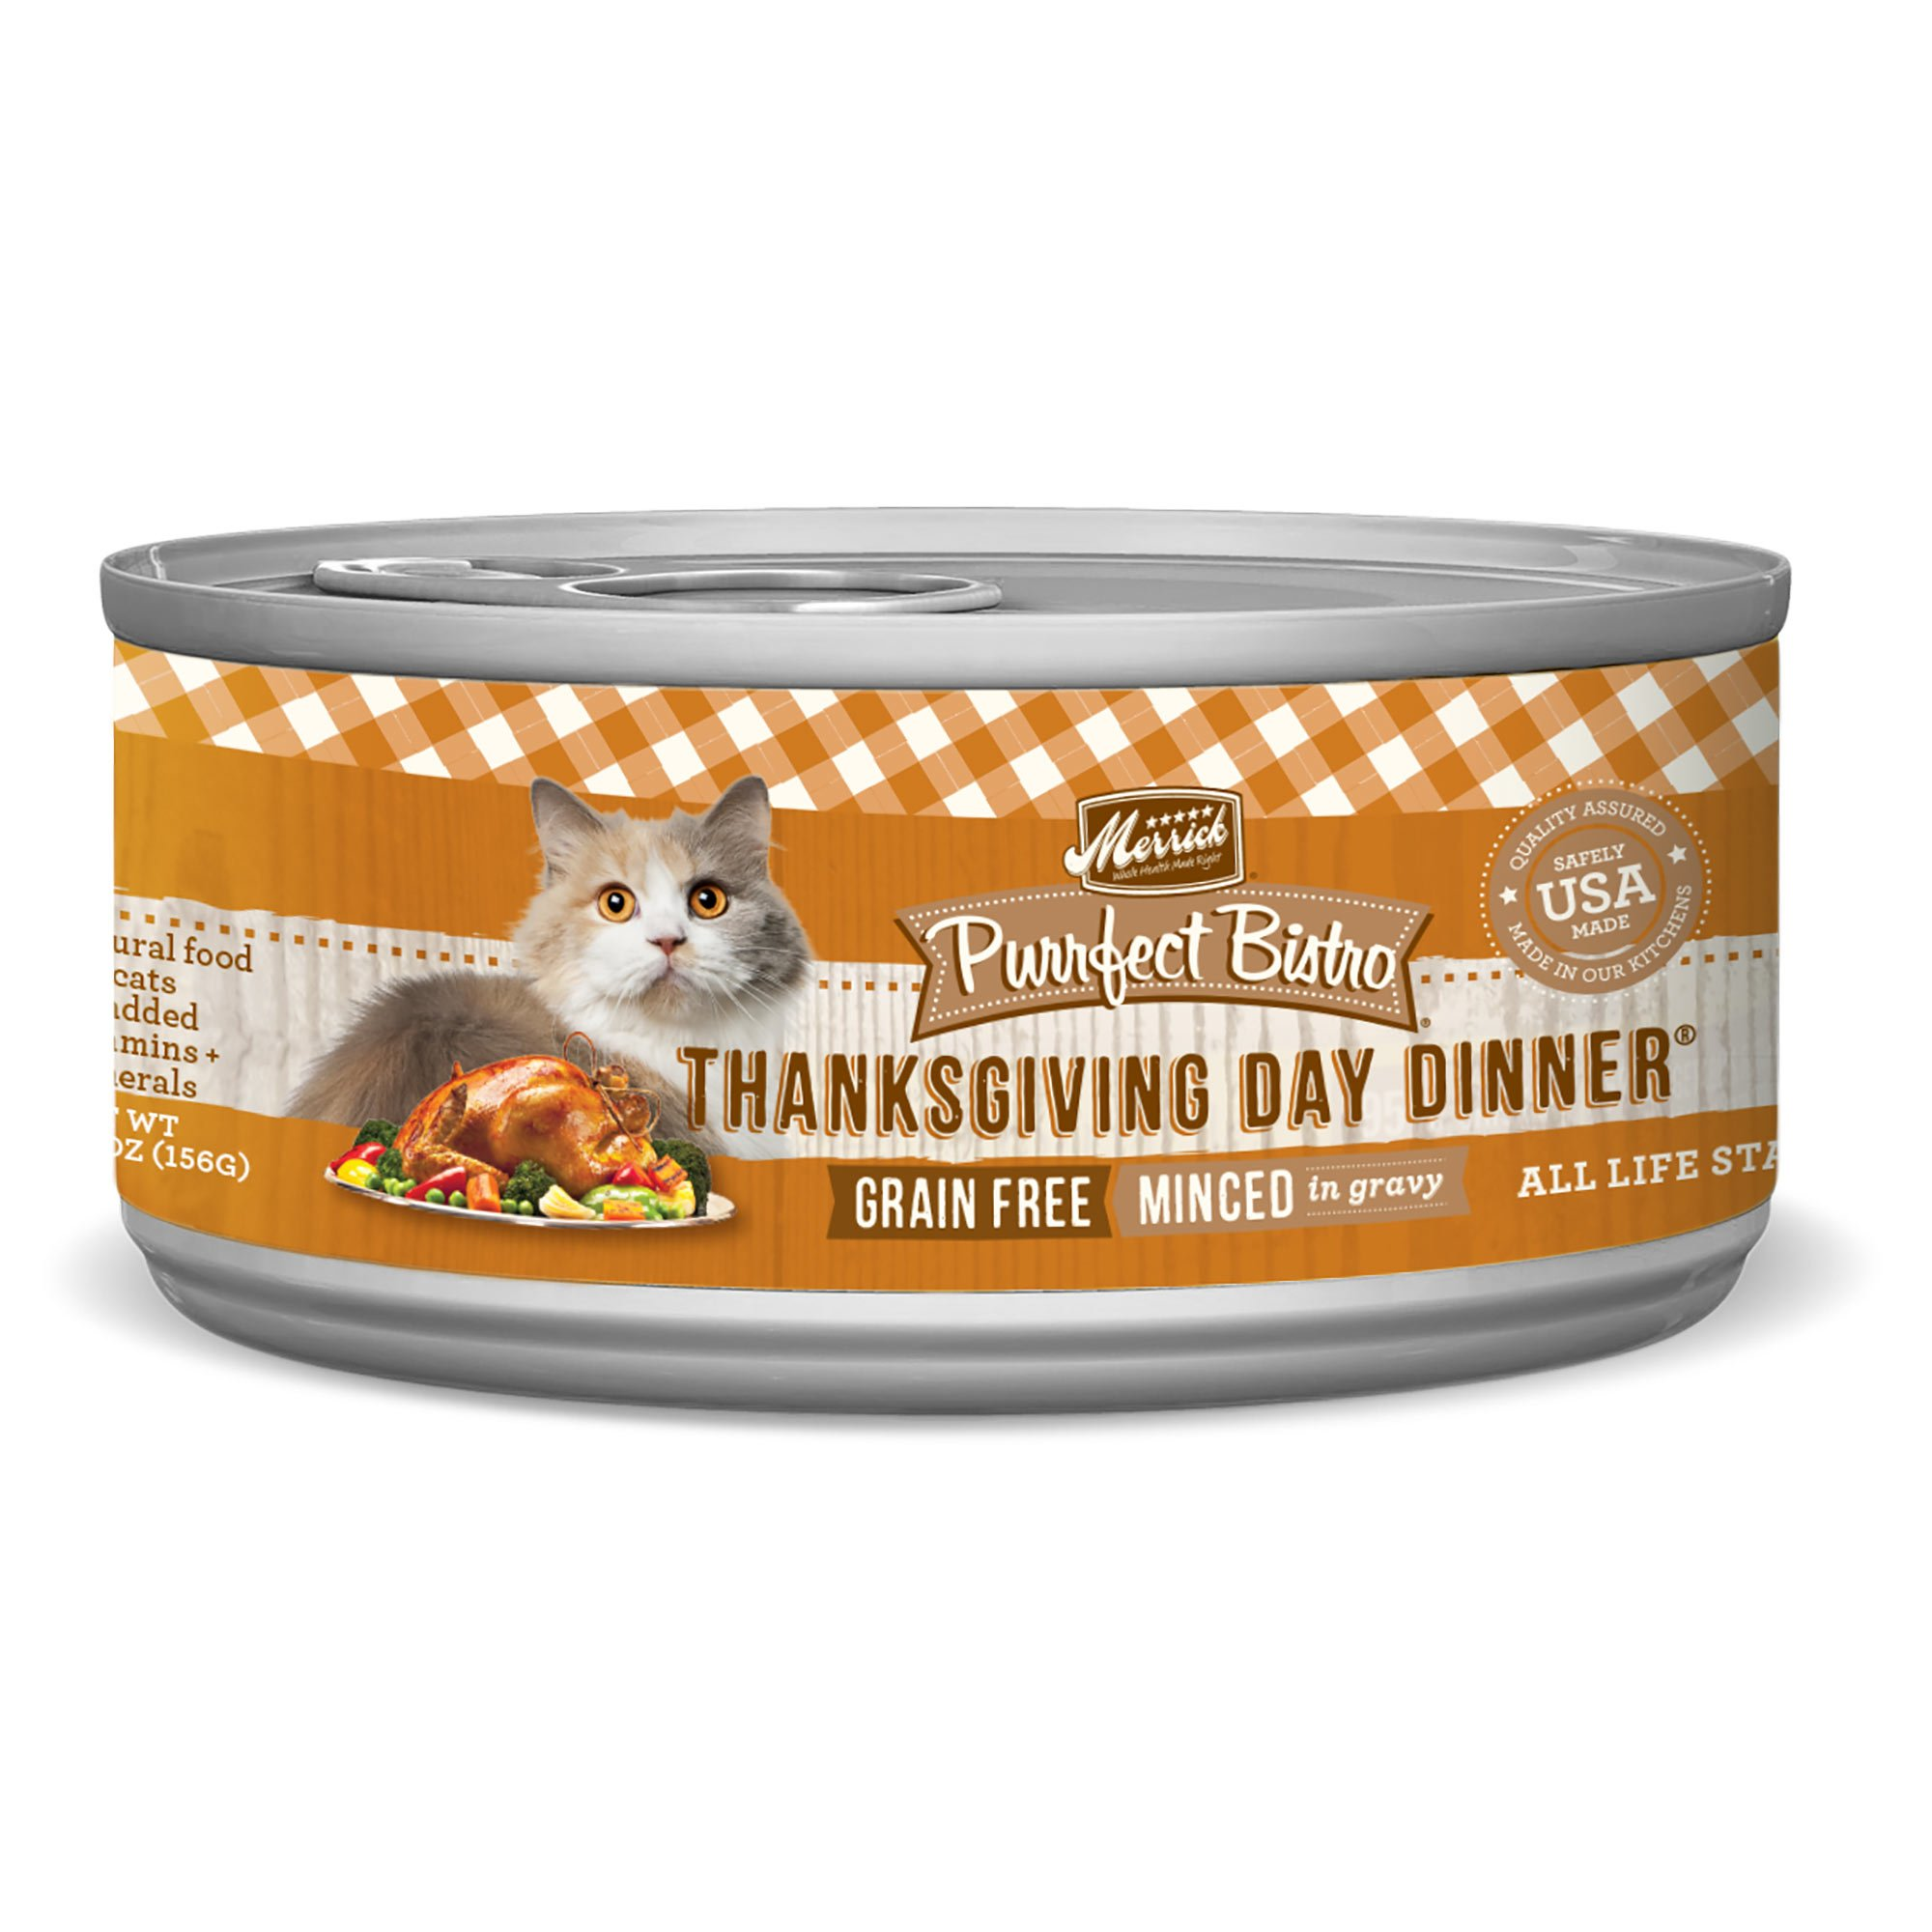 Merrick Purrfect Bistro Grain Free, 5.5 oz, Thanksgiving Day Dinner - Pack of 24 by Merrick (Image #1)